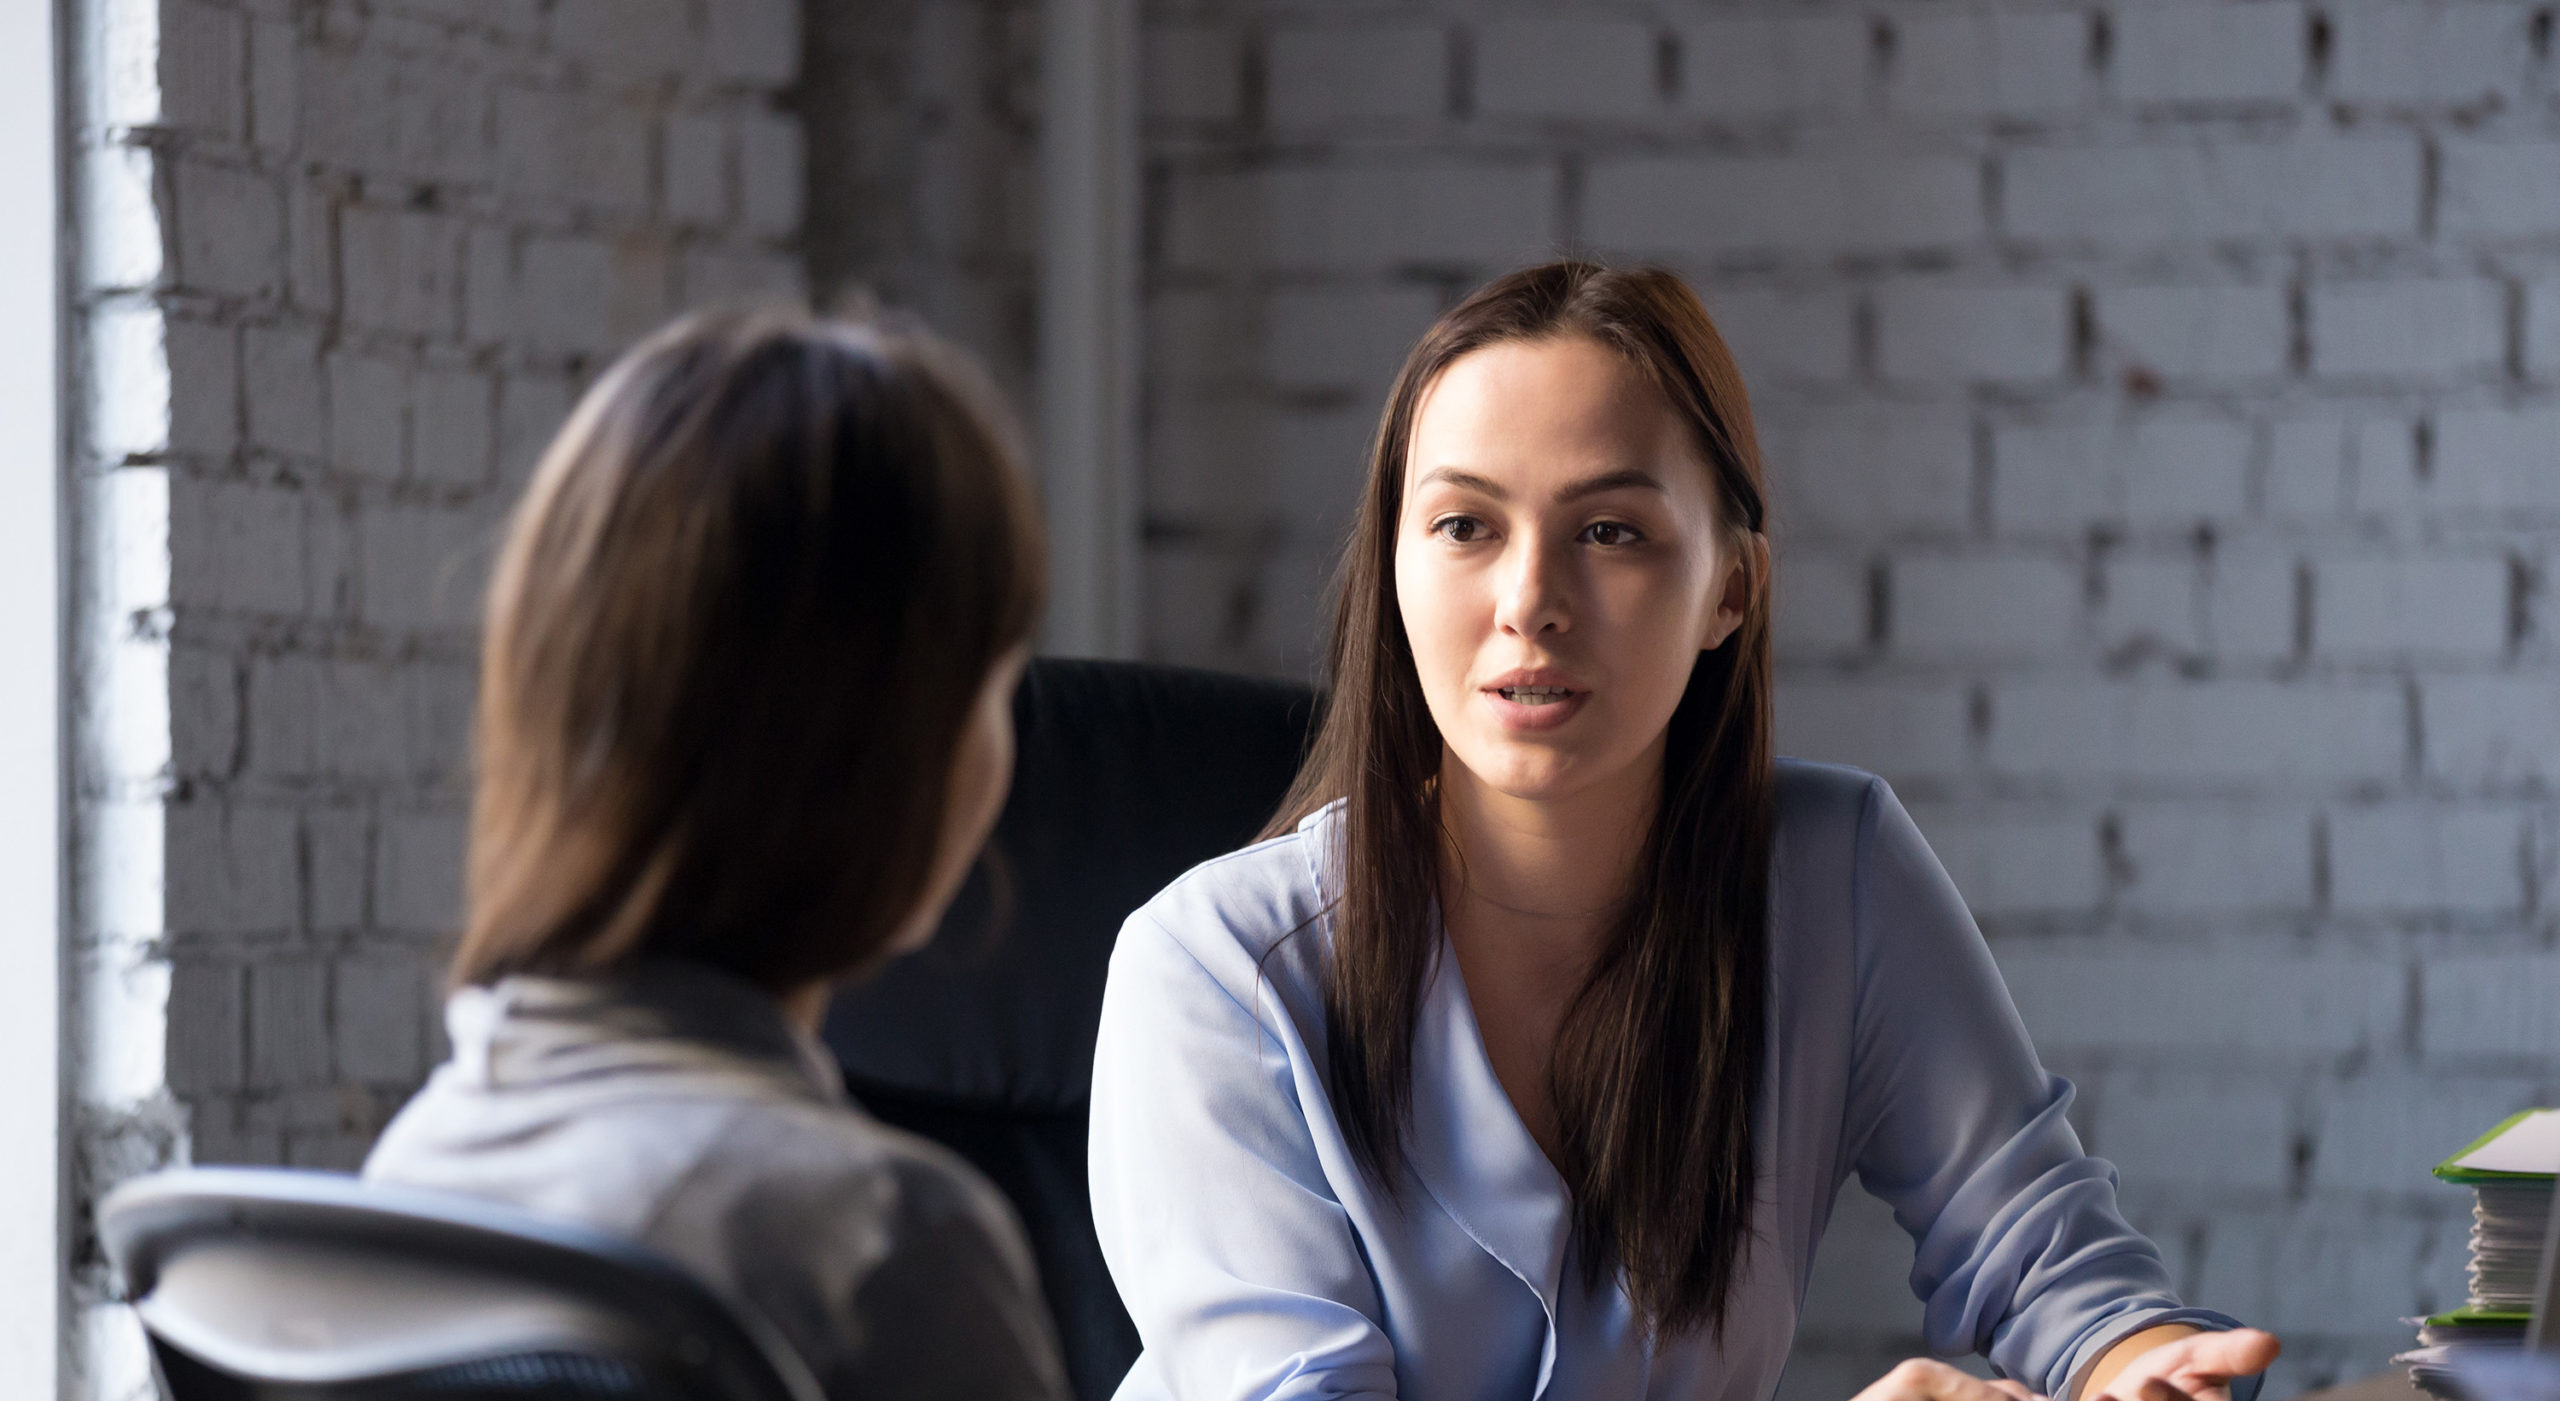 A business woman mentoring another woman